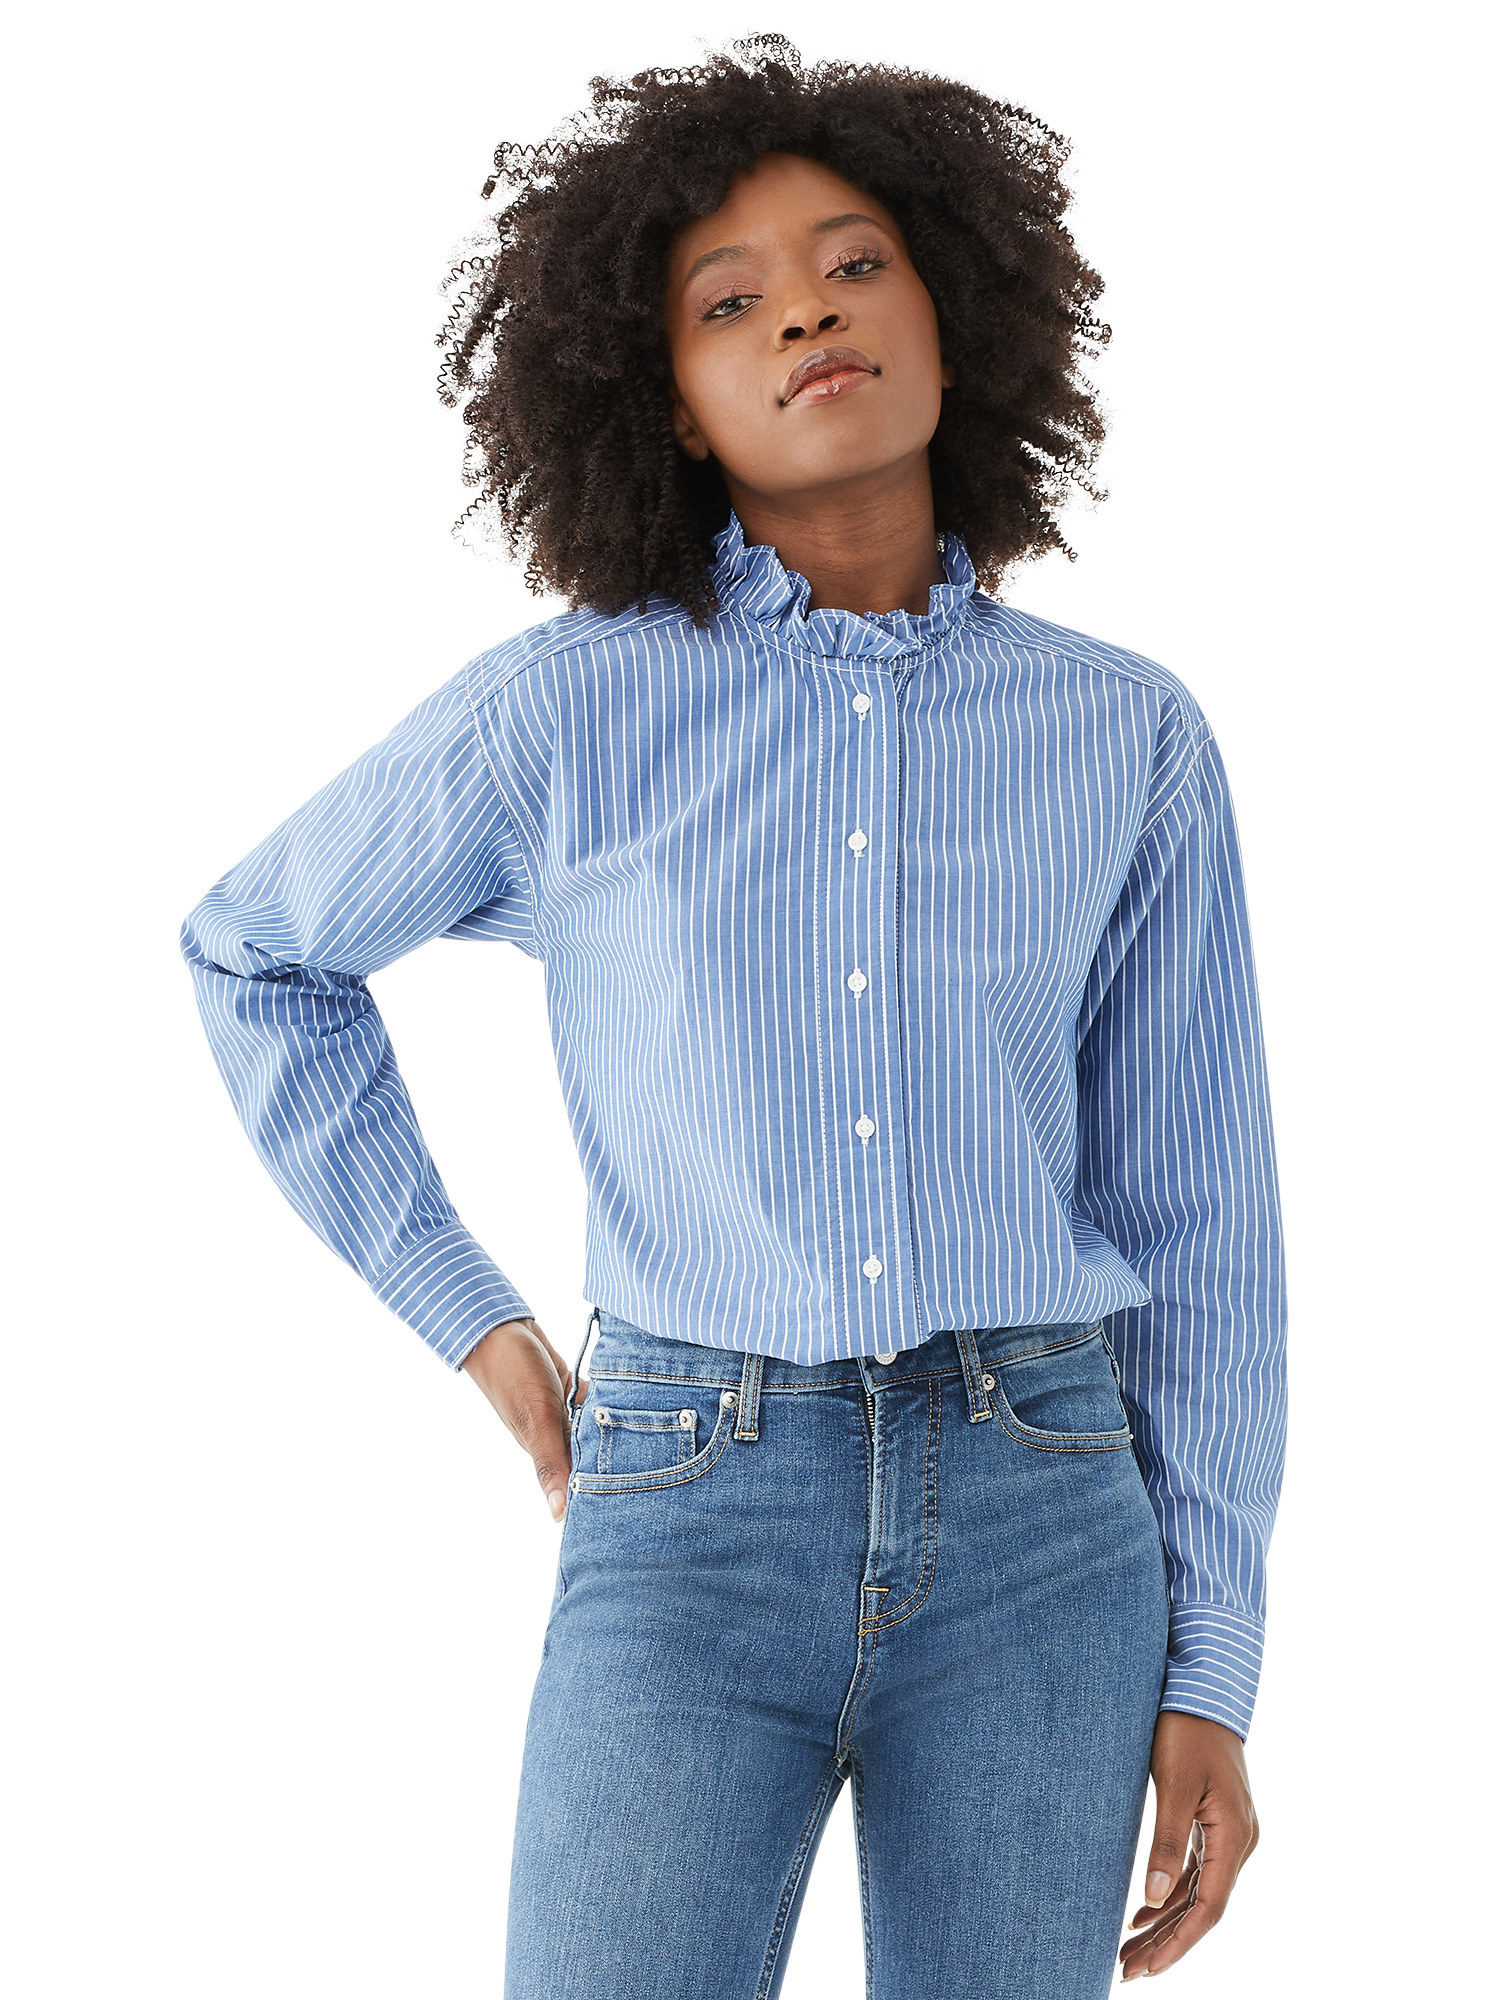 Model in blue and white striped shirt with ruffled collard